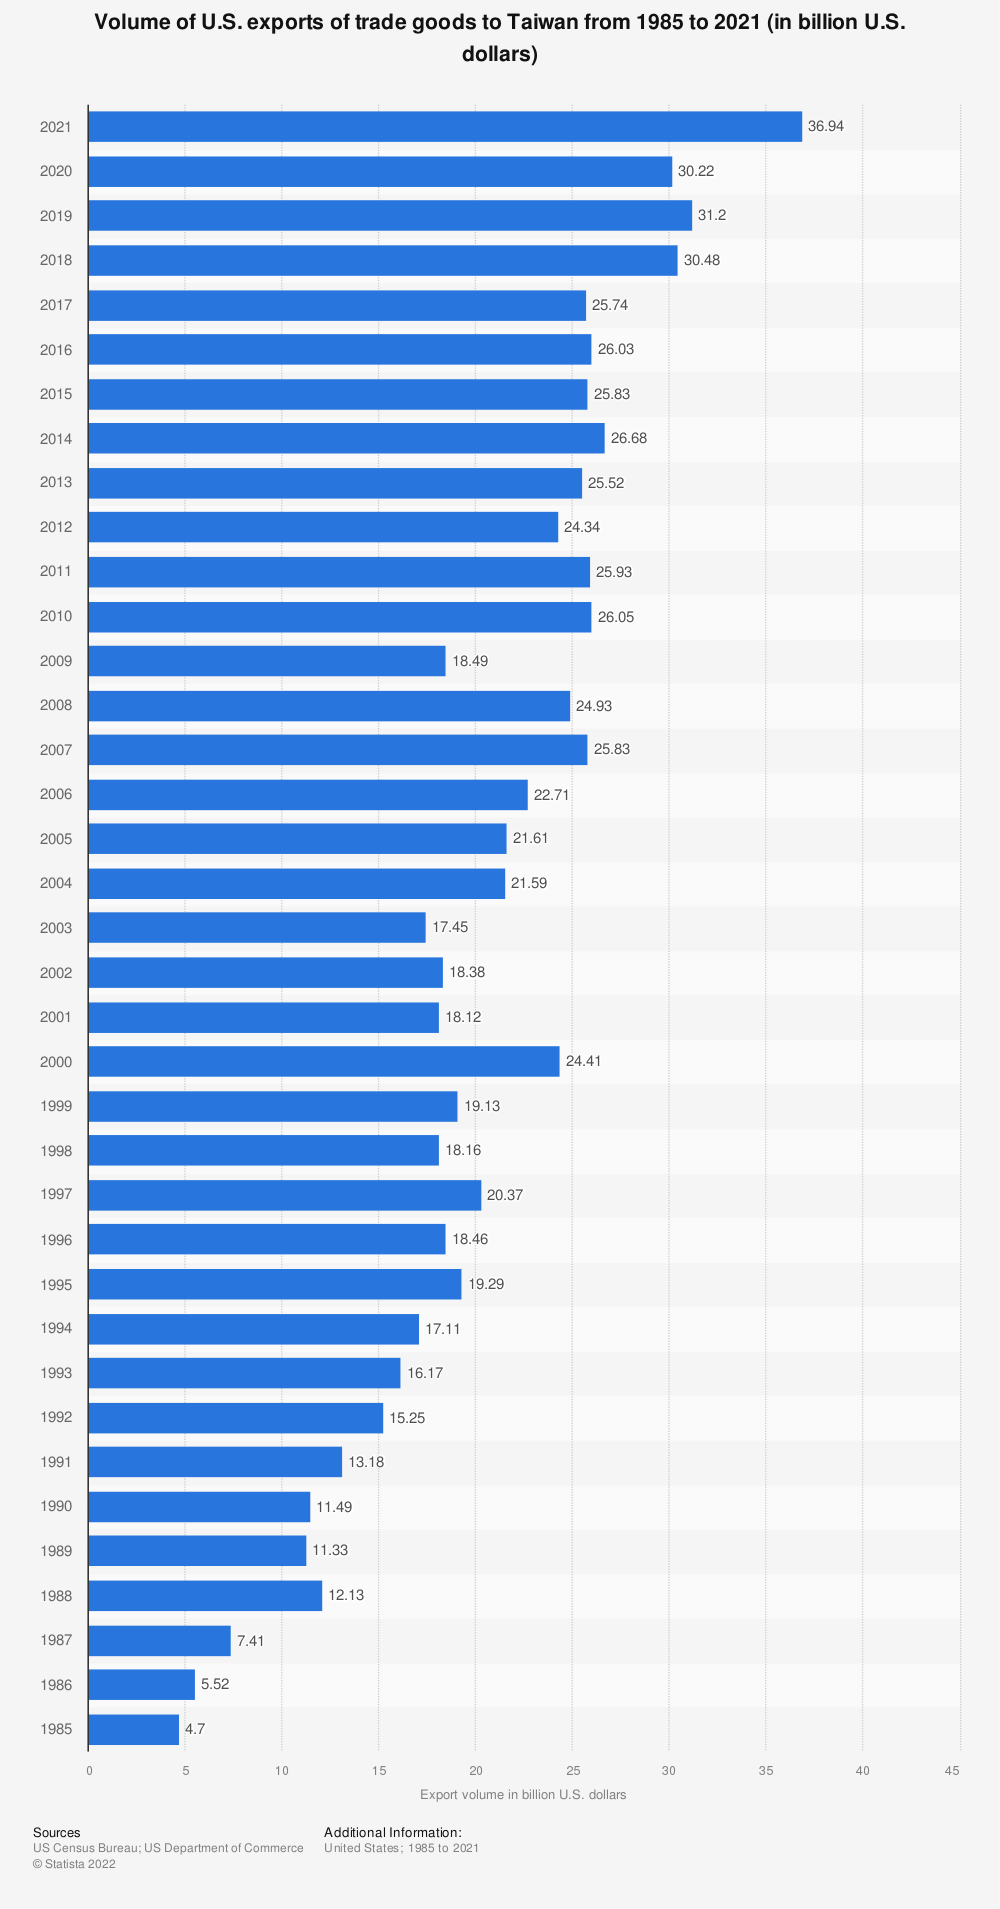 Statistic: Volume of U.S. exports of trade goods to Taiwan from 1985 to 2018 (in billion U.S. dollars) | Statista